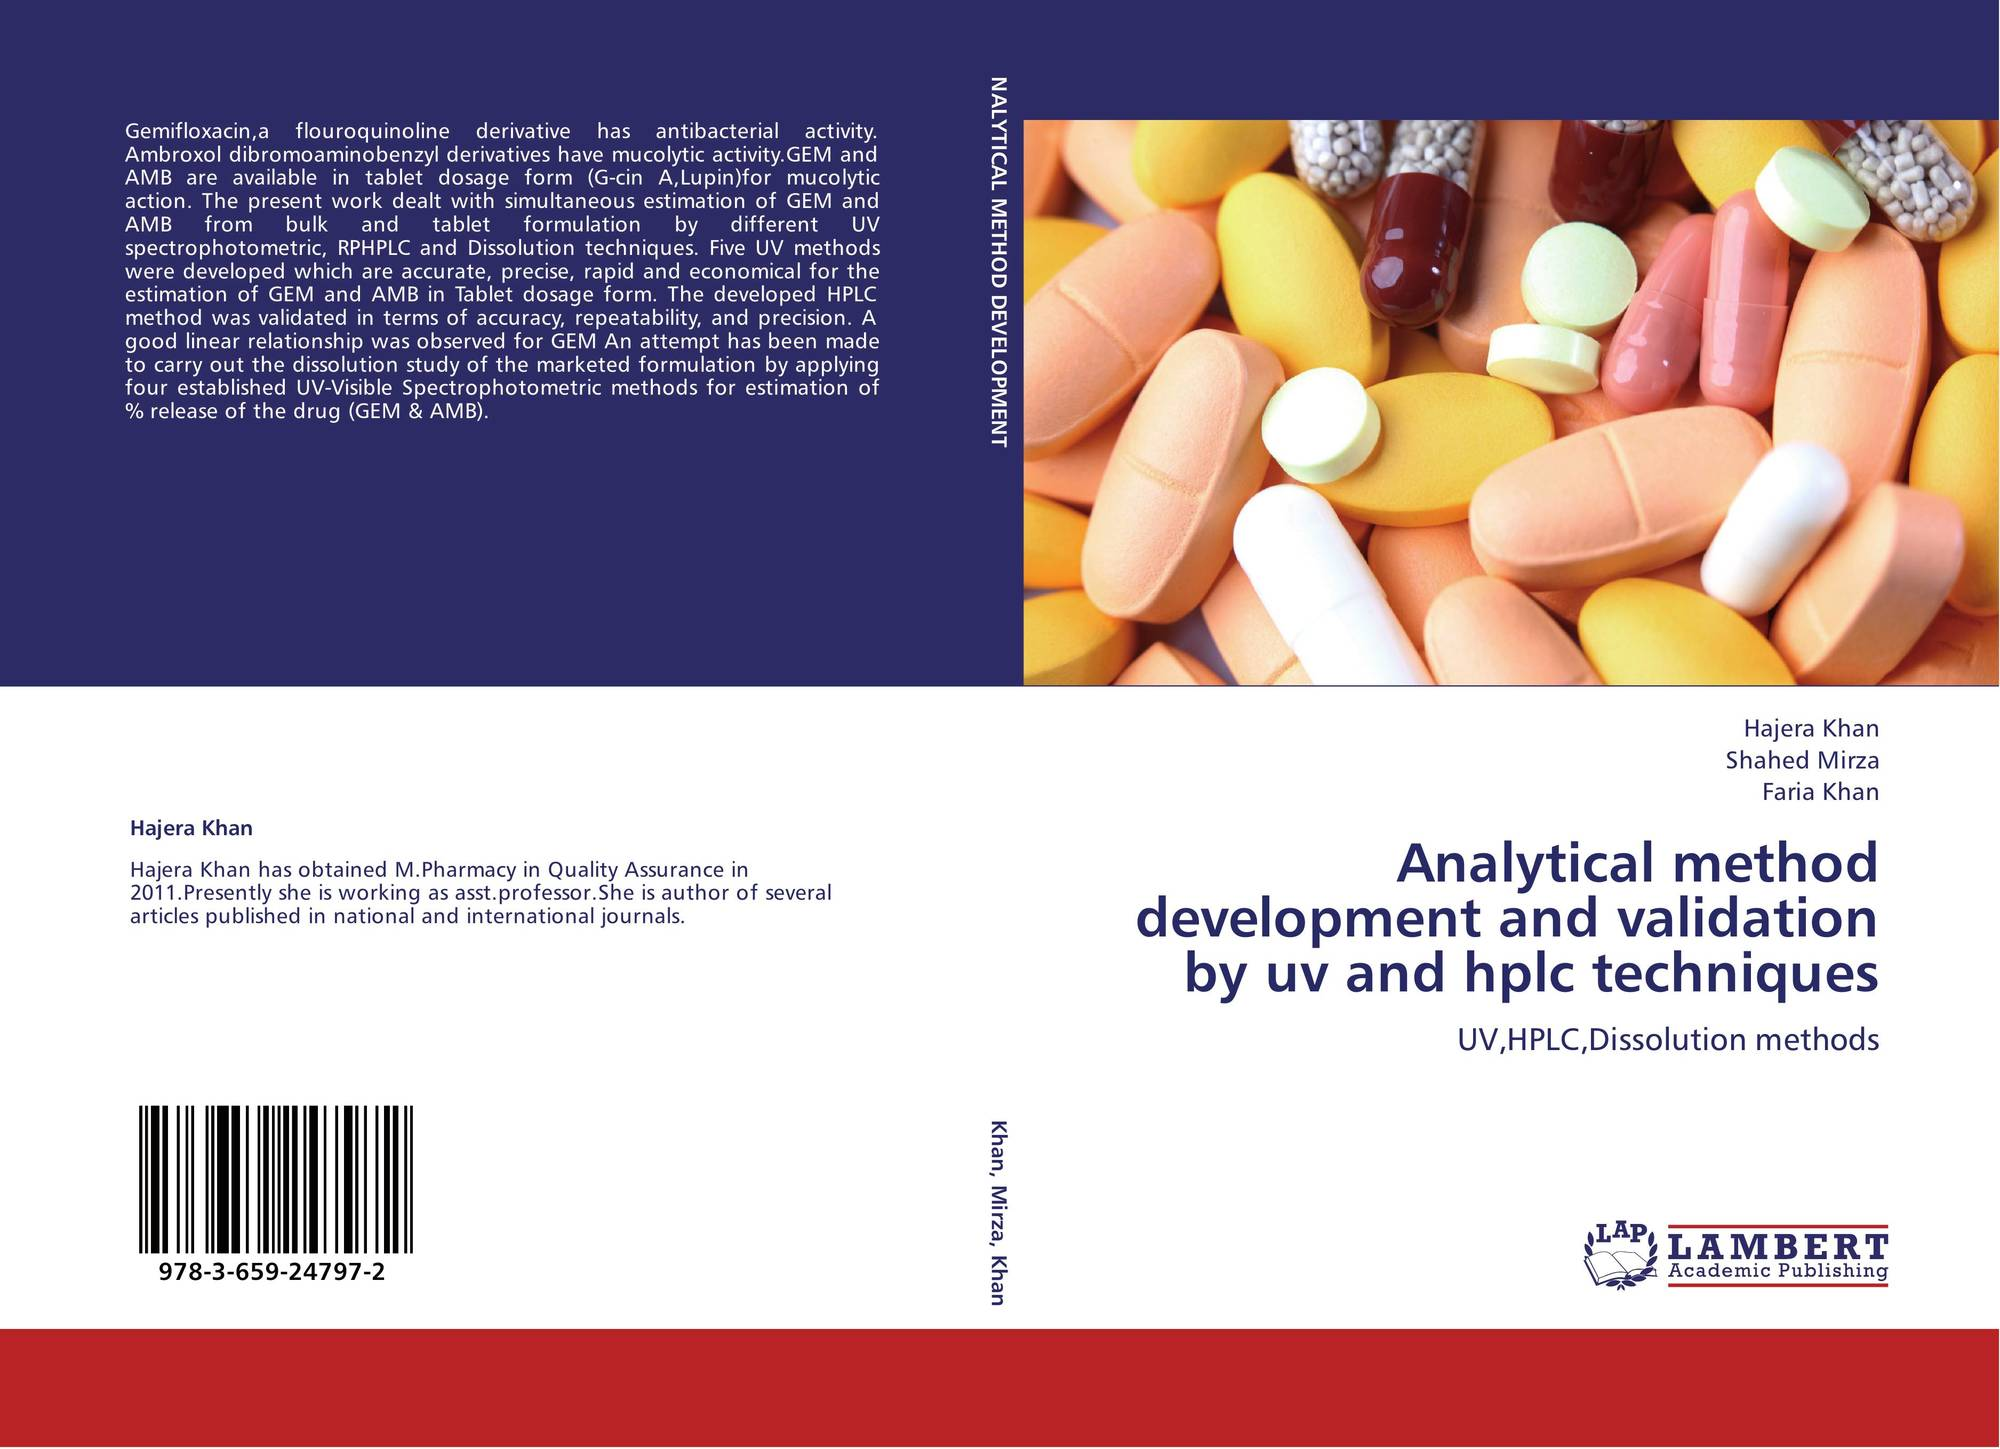 Hptlc Thesis - Development and Validation of HPLC Methods